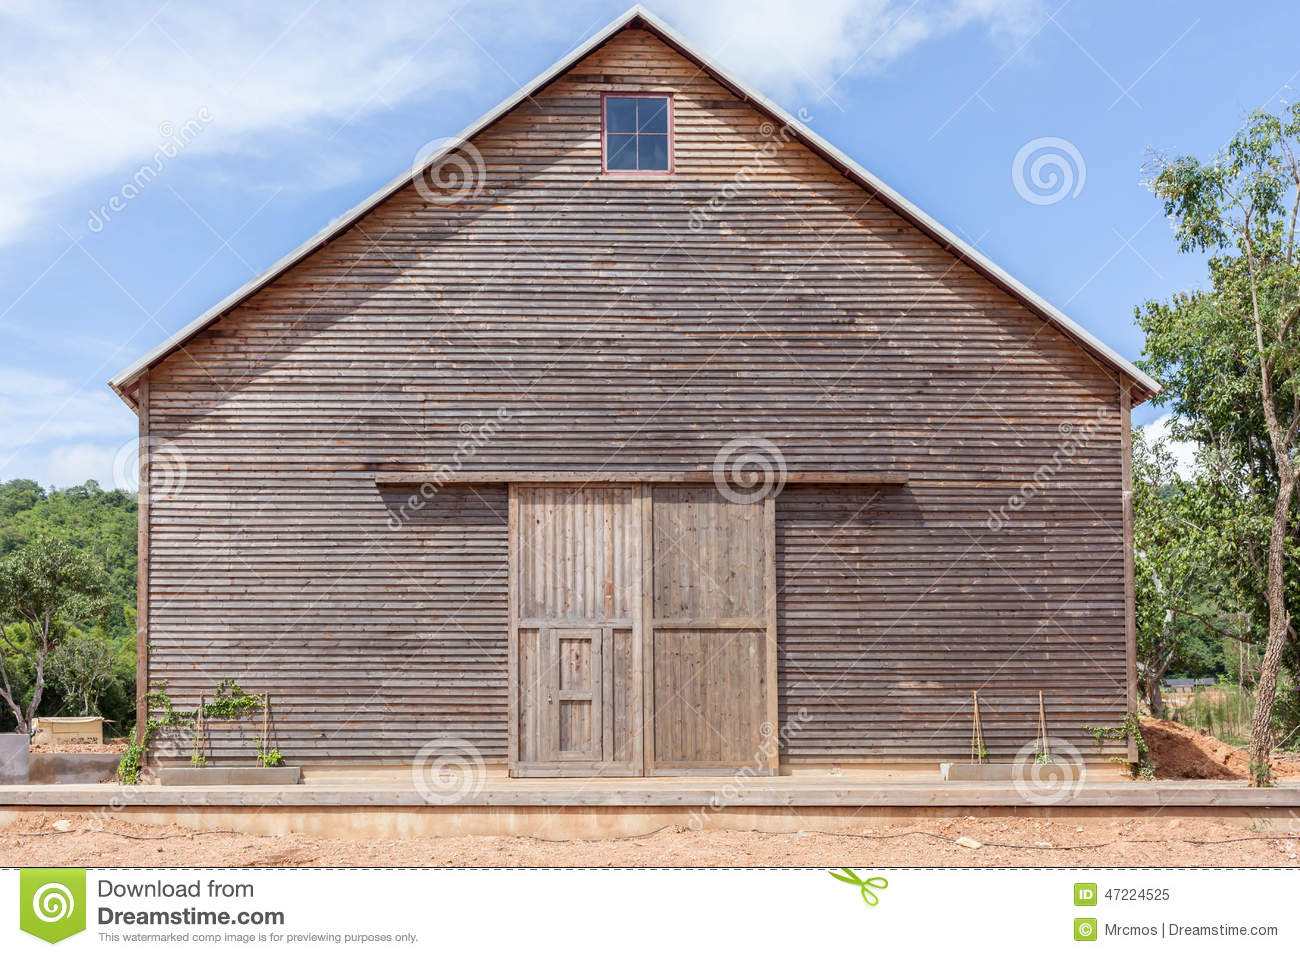 A wooden farm shed wooden barn and blue sky stock photo for Farm shed ideas